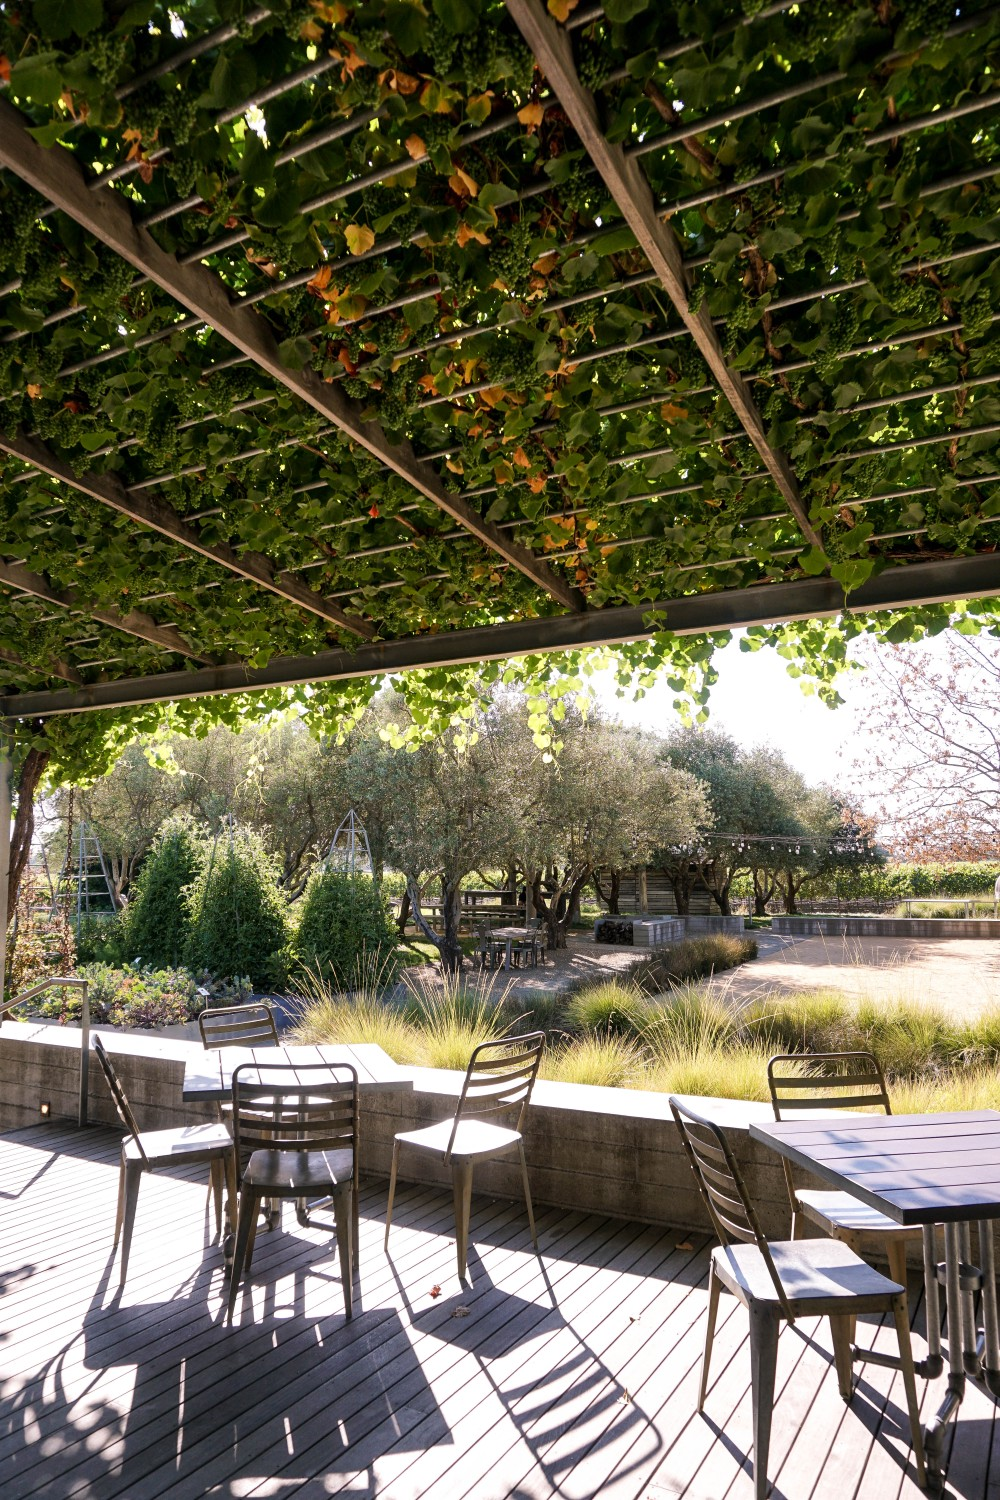 Wine Tasting in Healdsburg-Medlock Ames Winery-Food and Wine-Wine and Cheese-Wine Tasting-Wine Country-Have Need Want 4